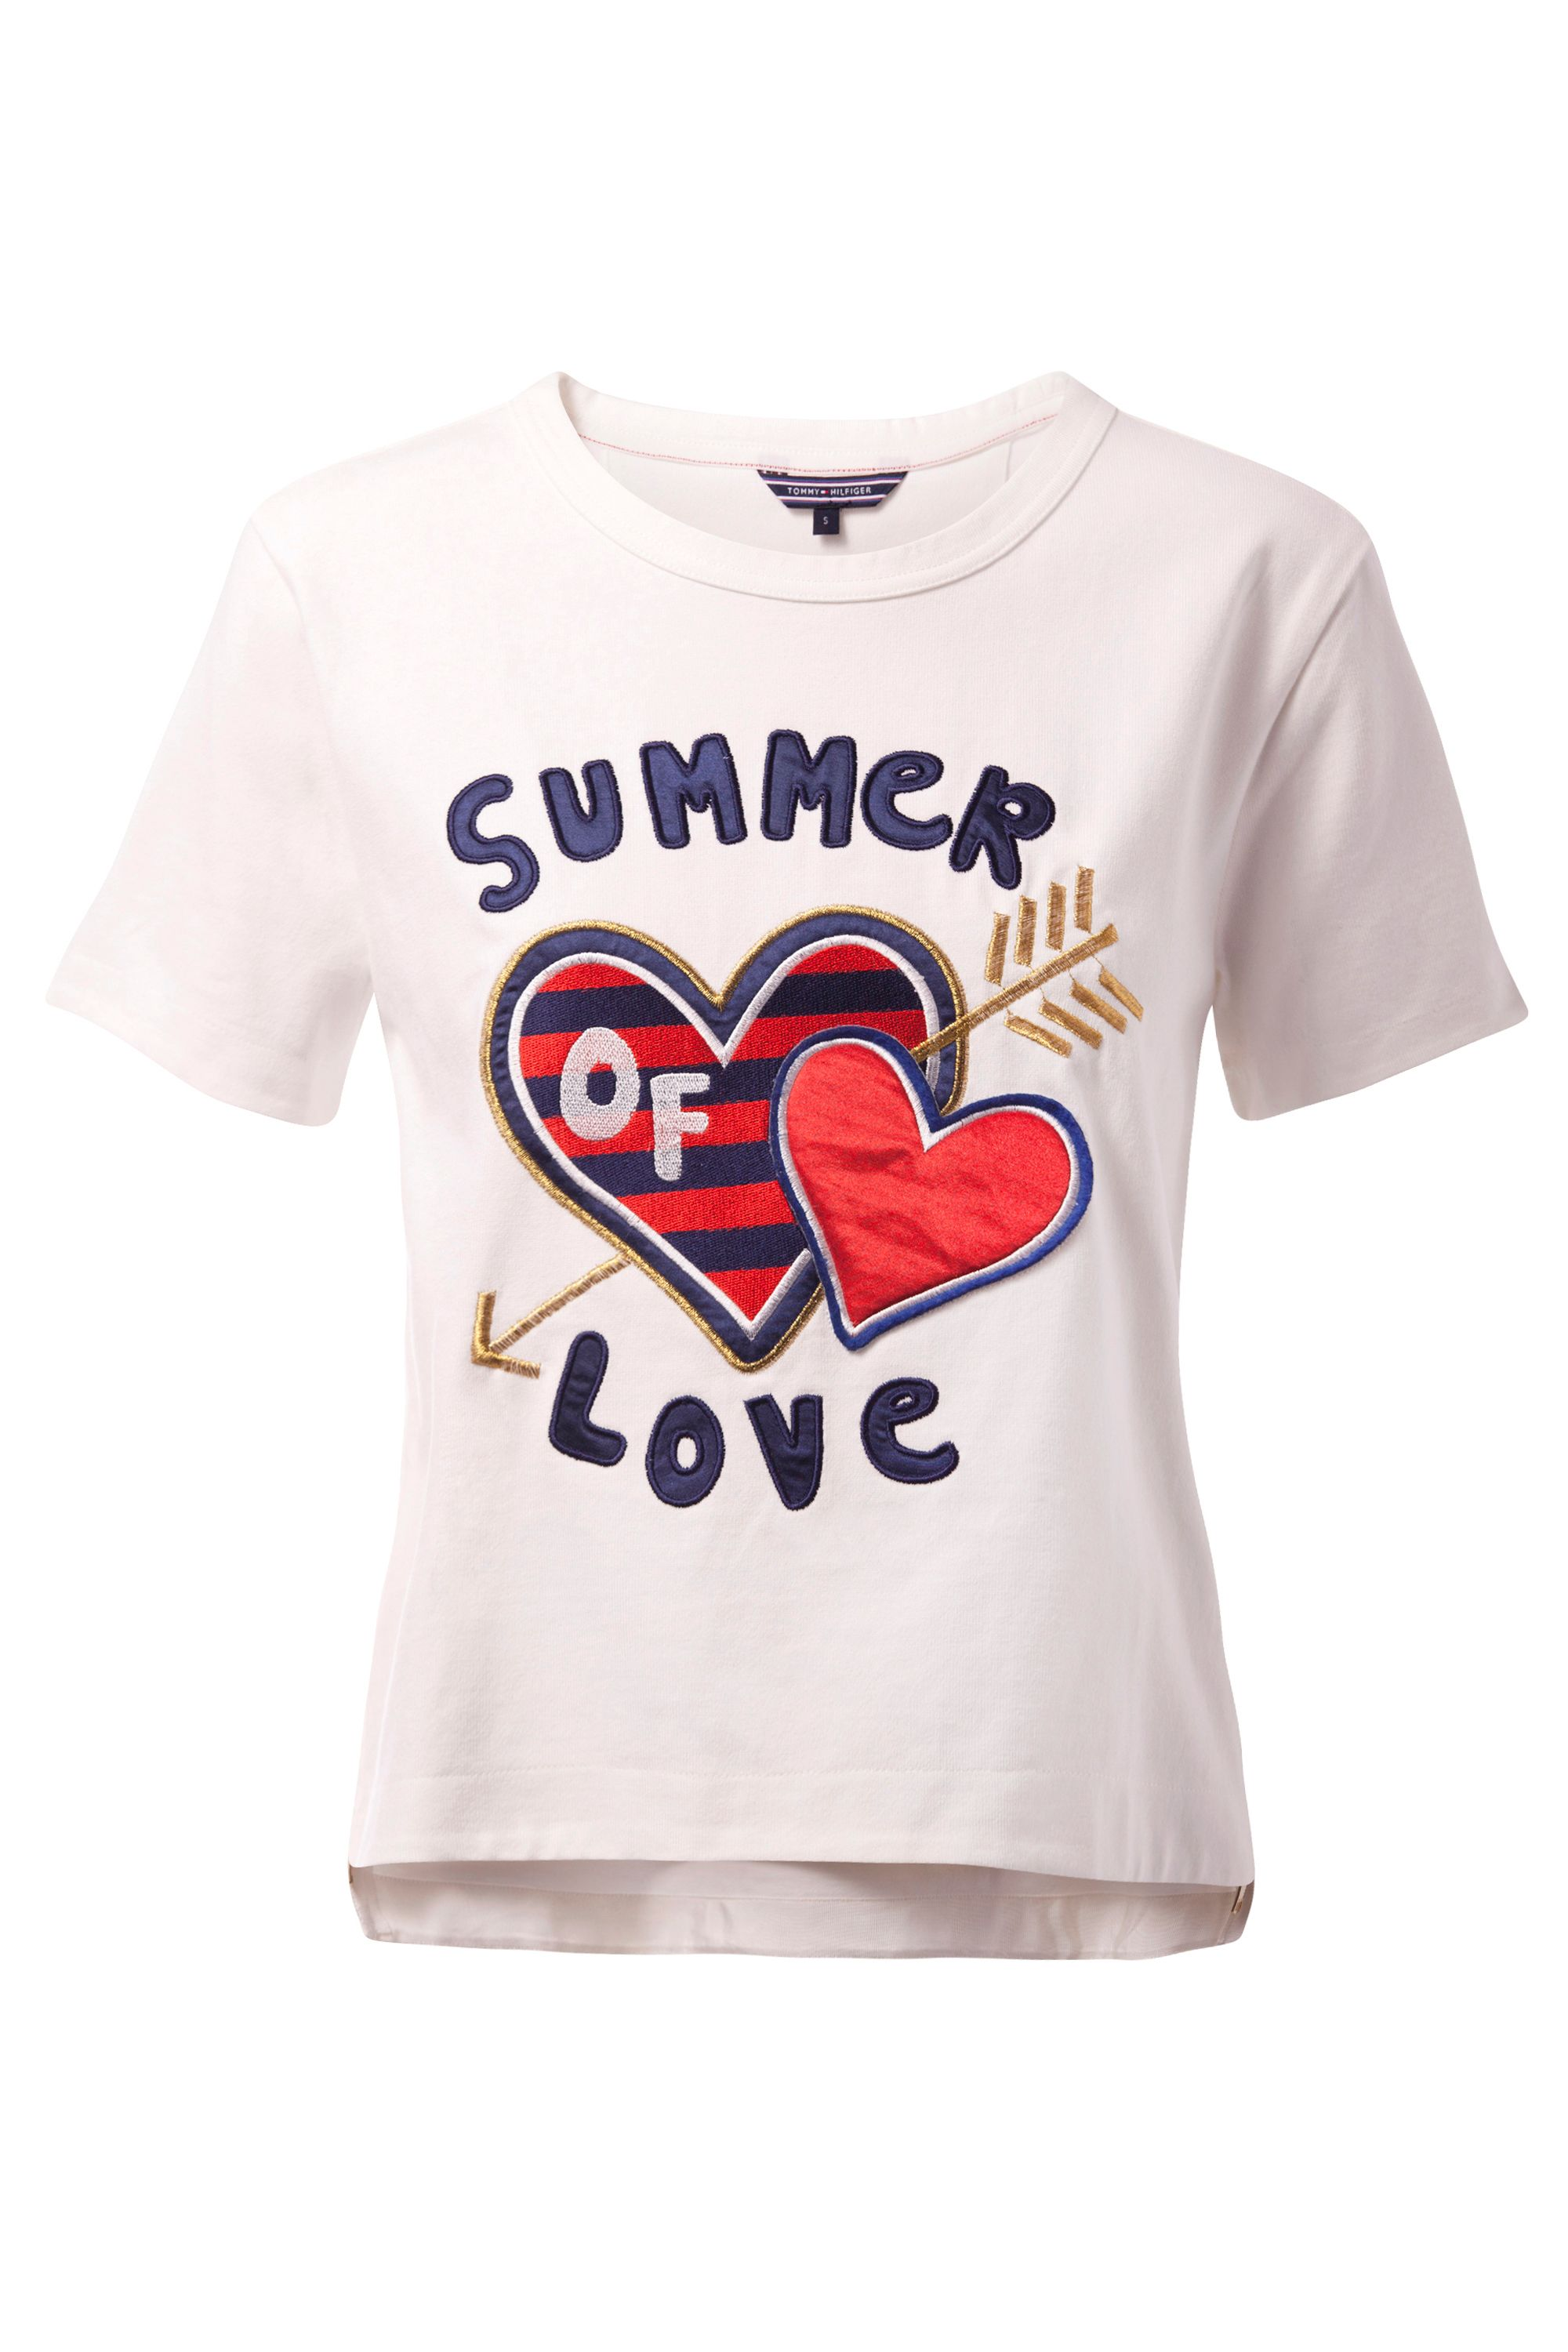 Tommy Hilfiger Cameron Top, White